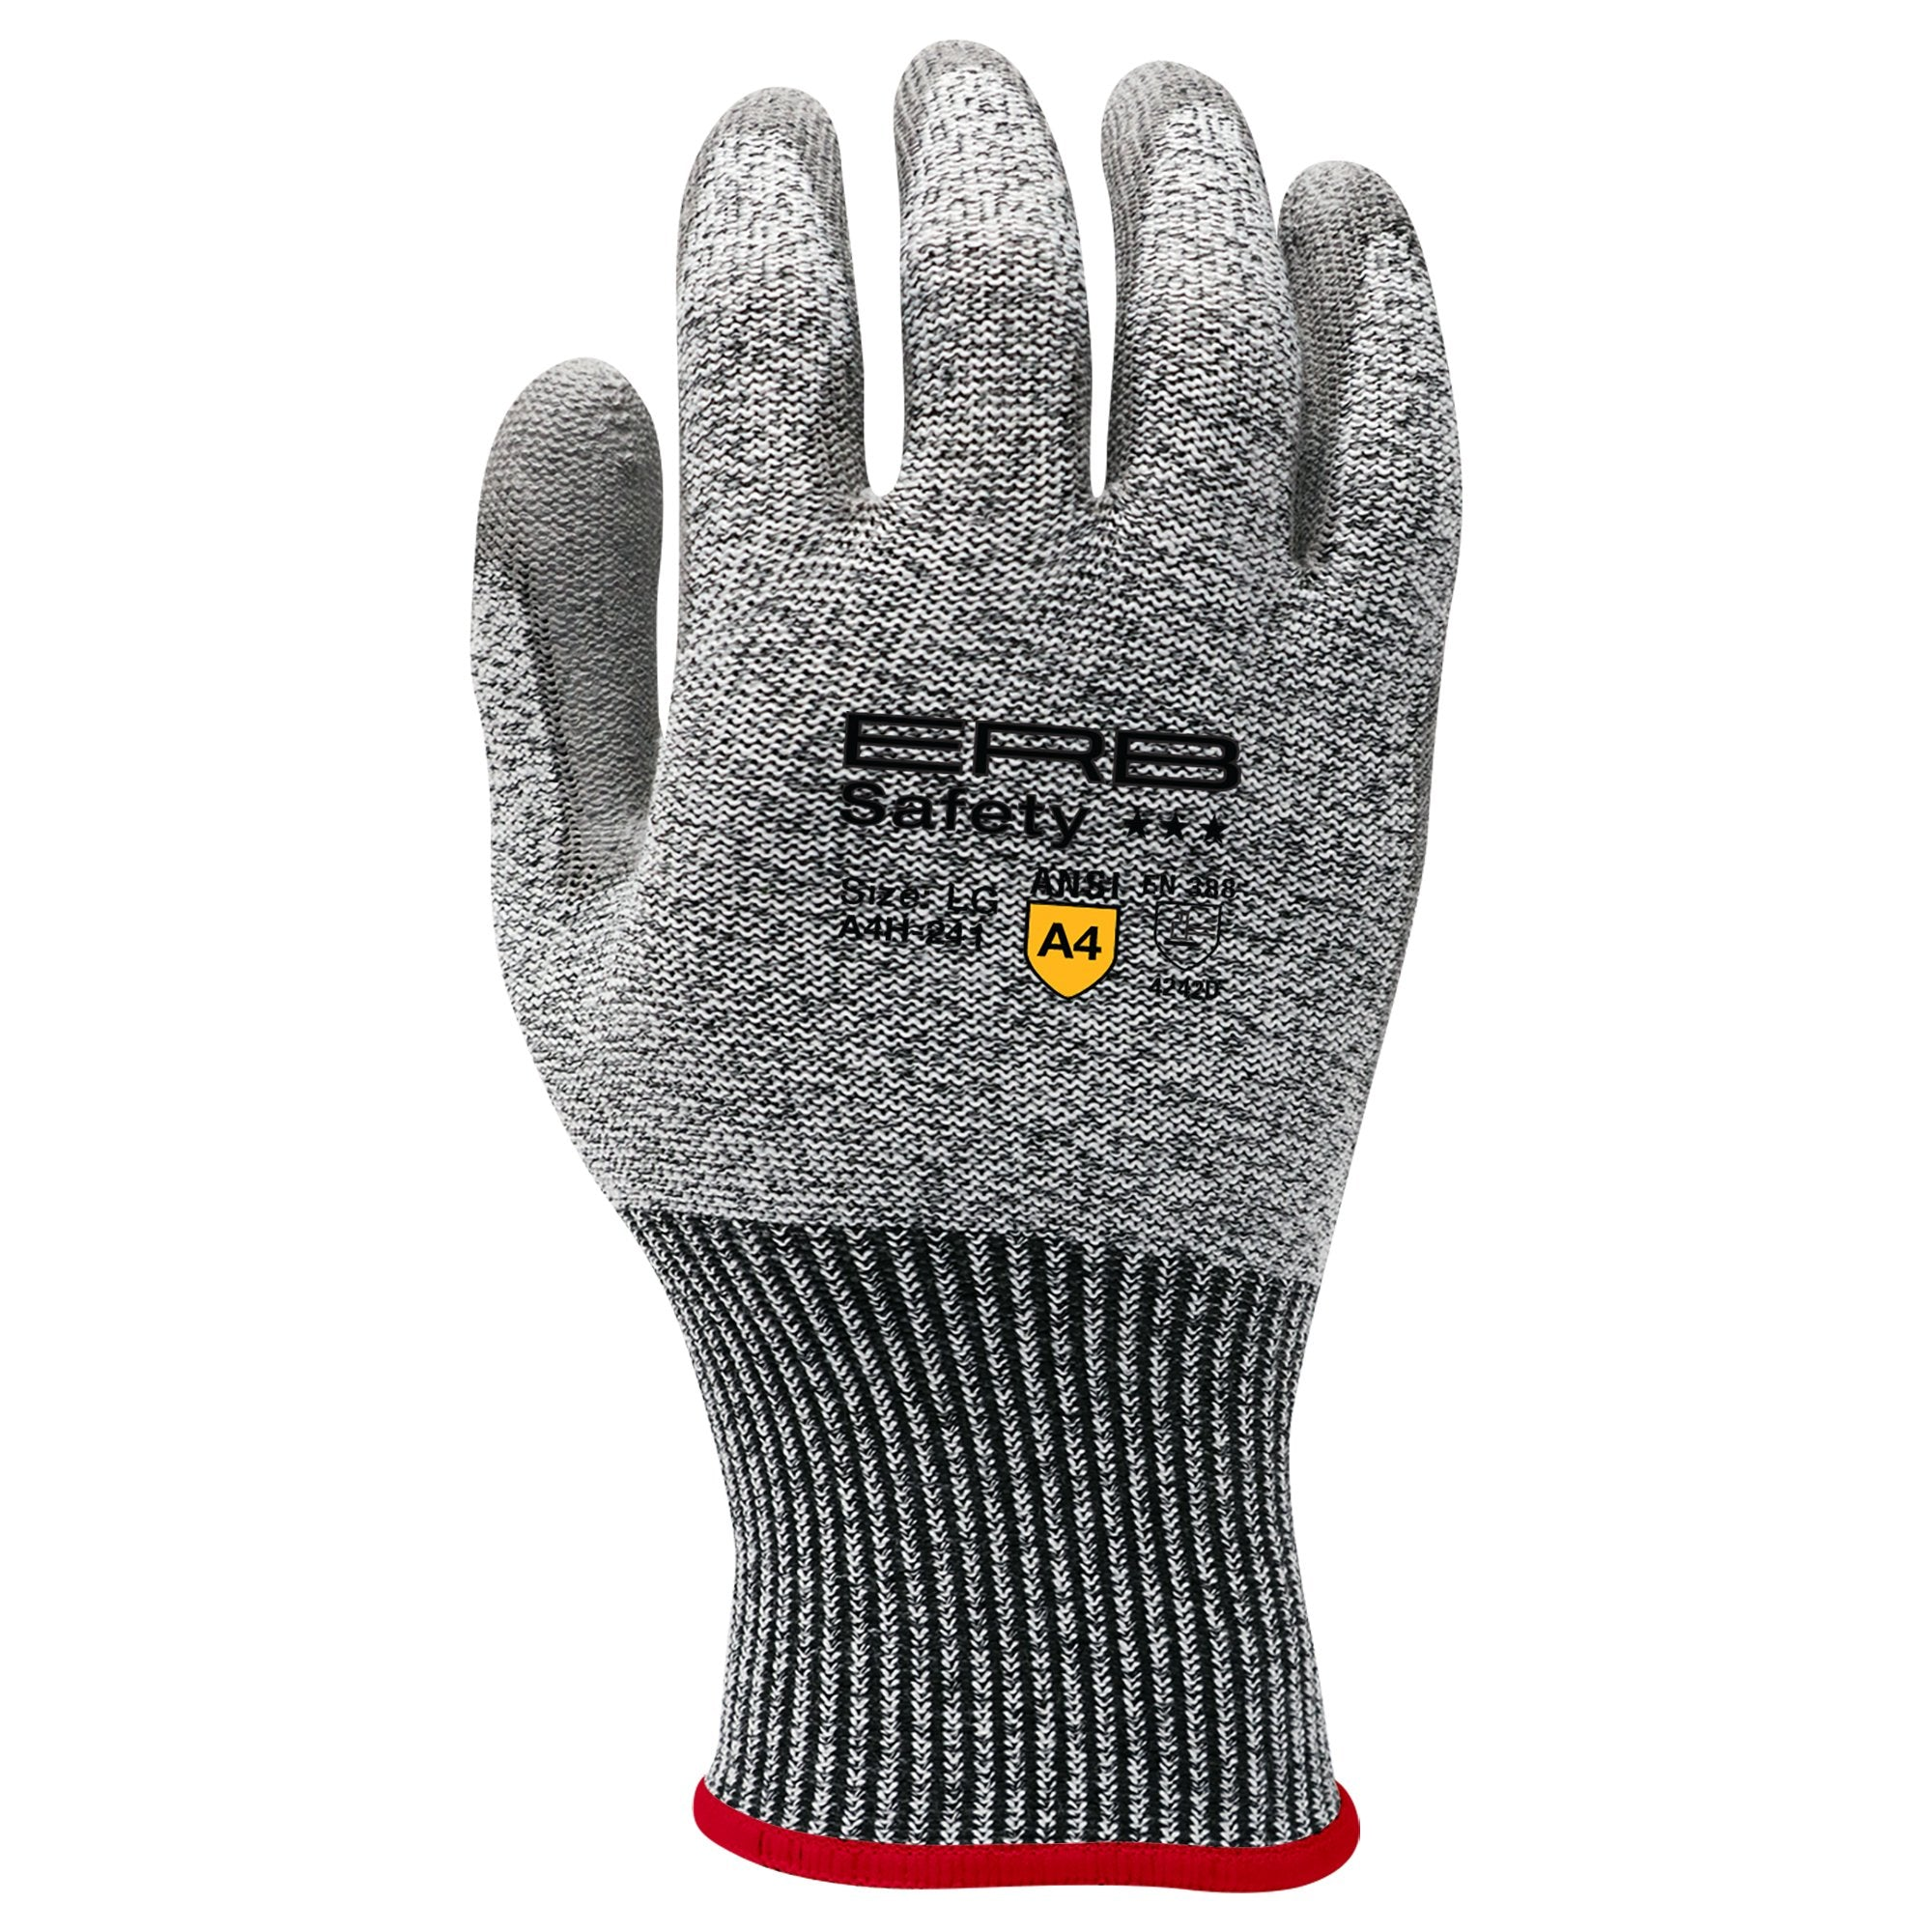 A4H-241 HPPE Cut Glove with PU Coating 1pair